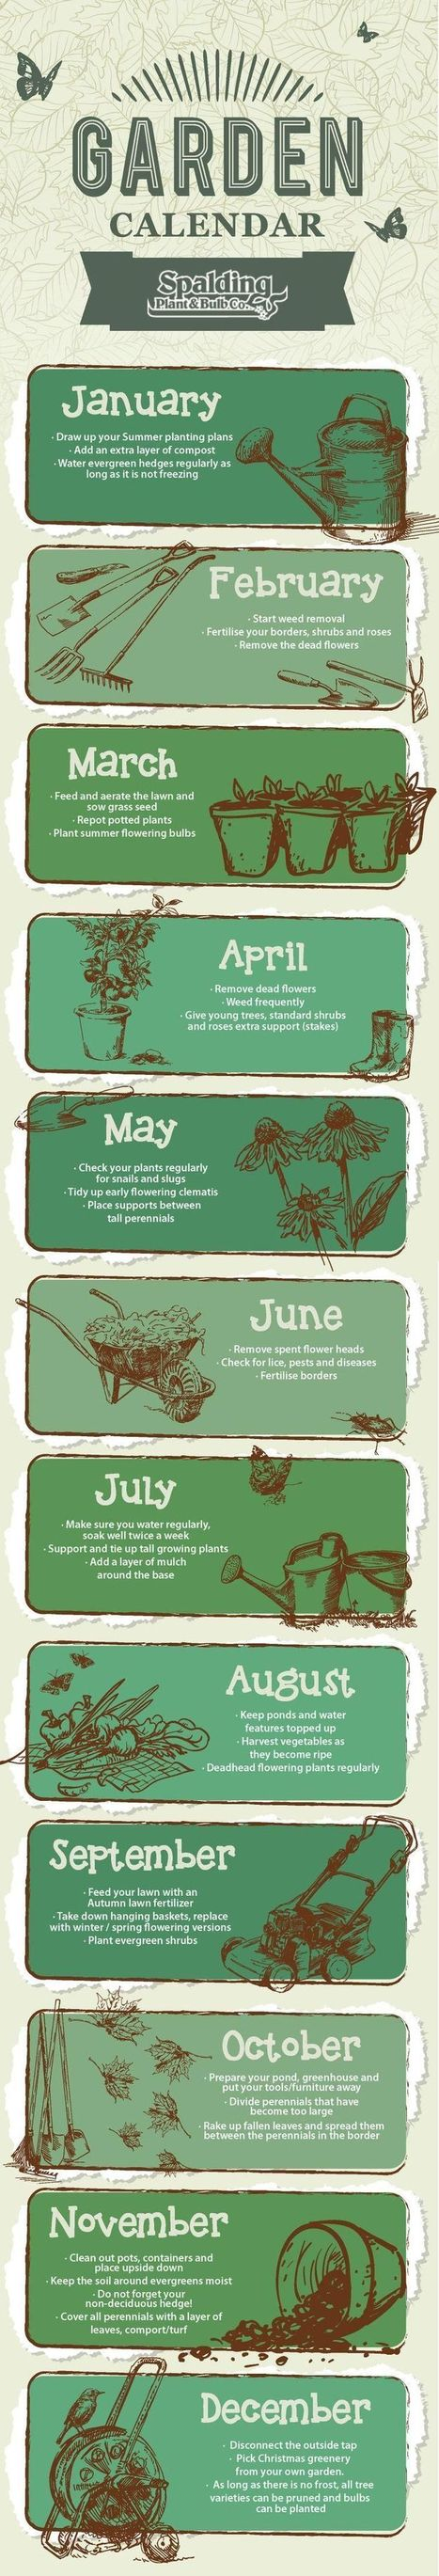 Planting | Gardening is more than Digging the Dirt | Scoop.it